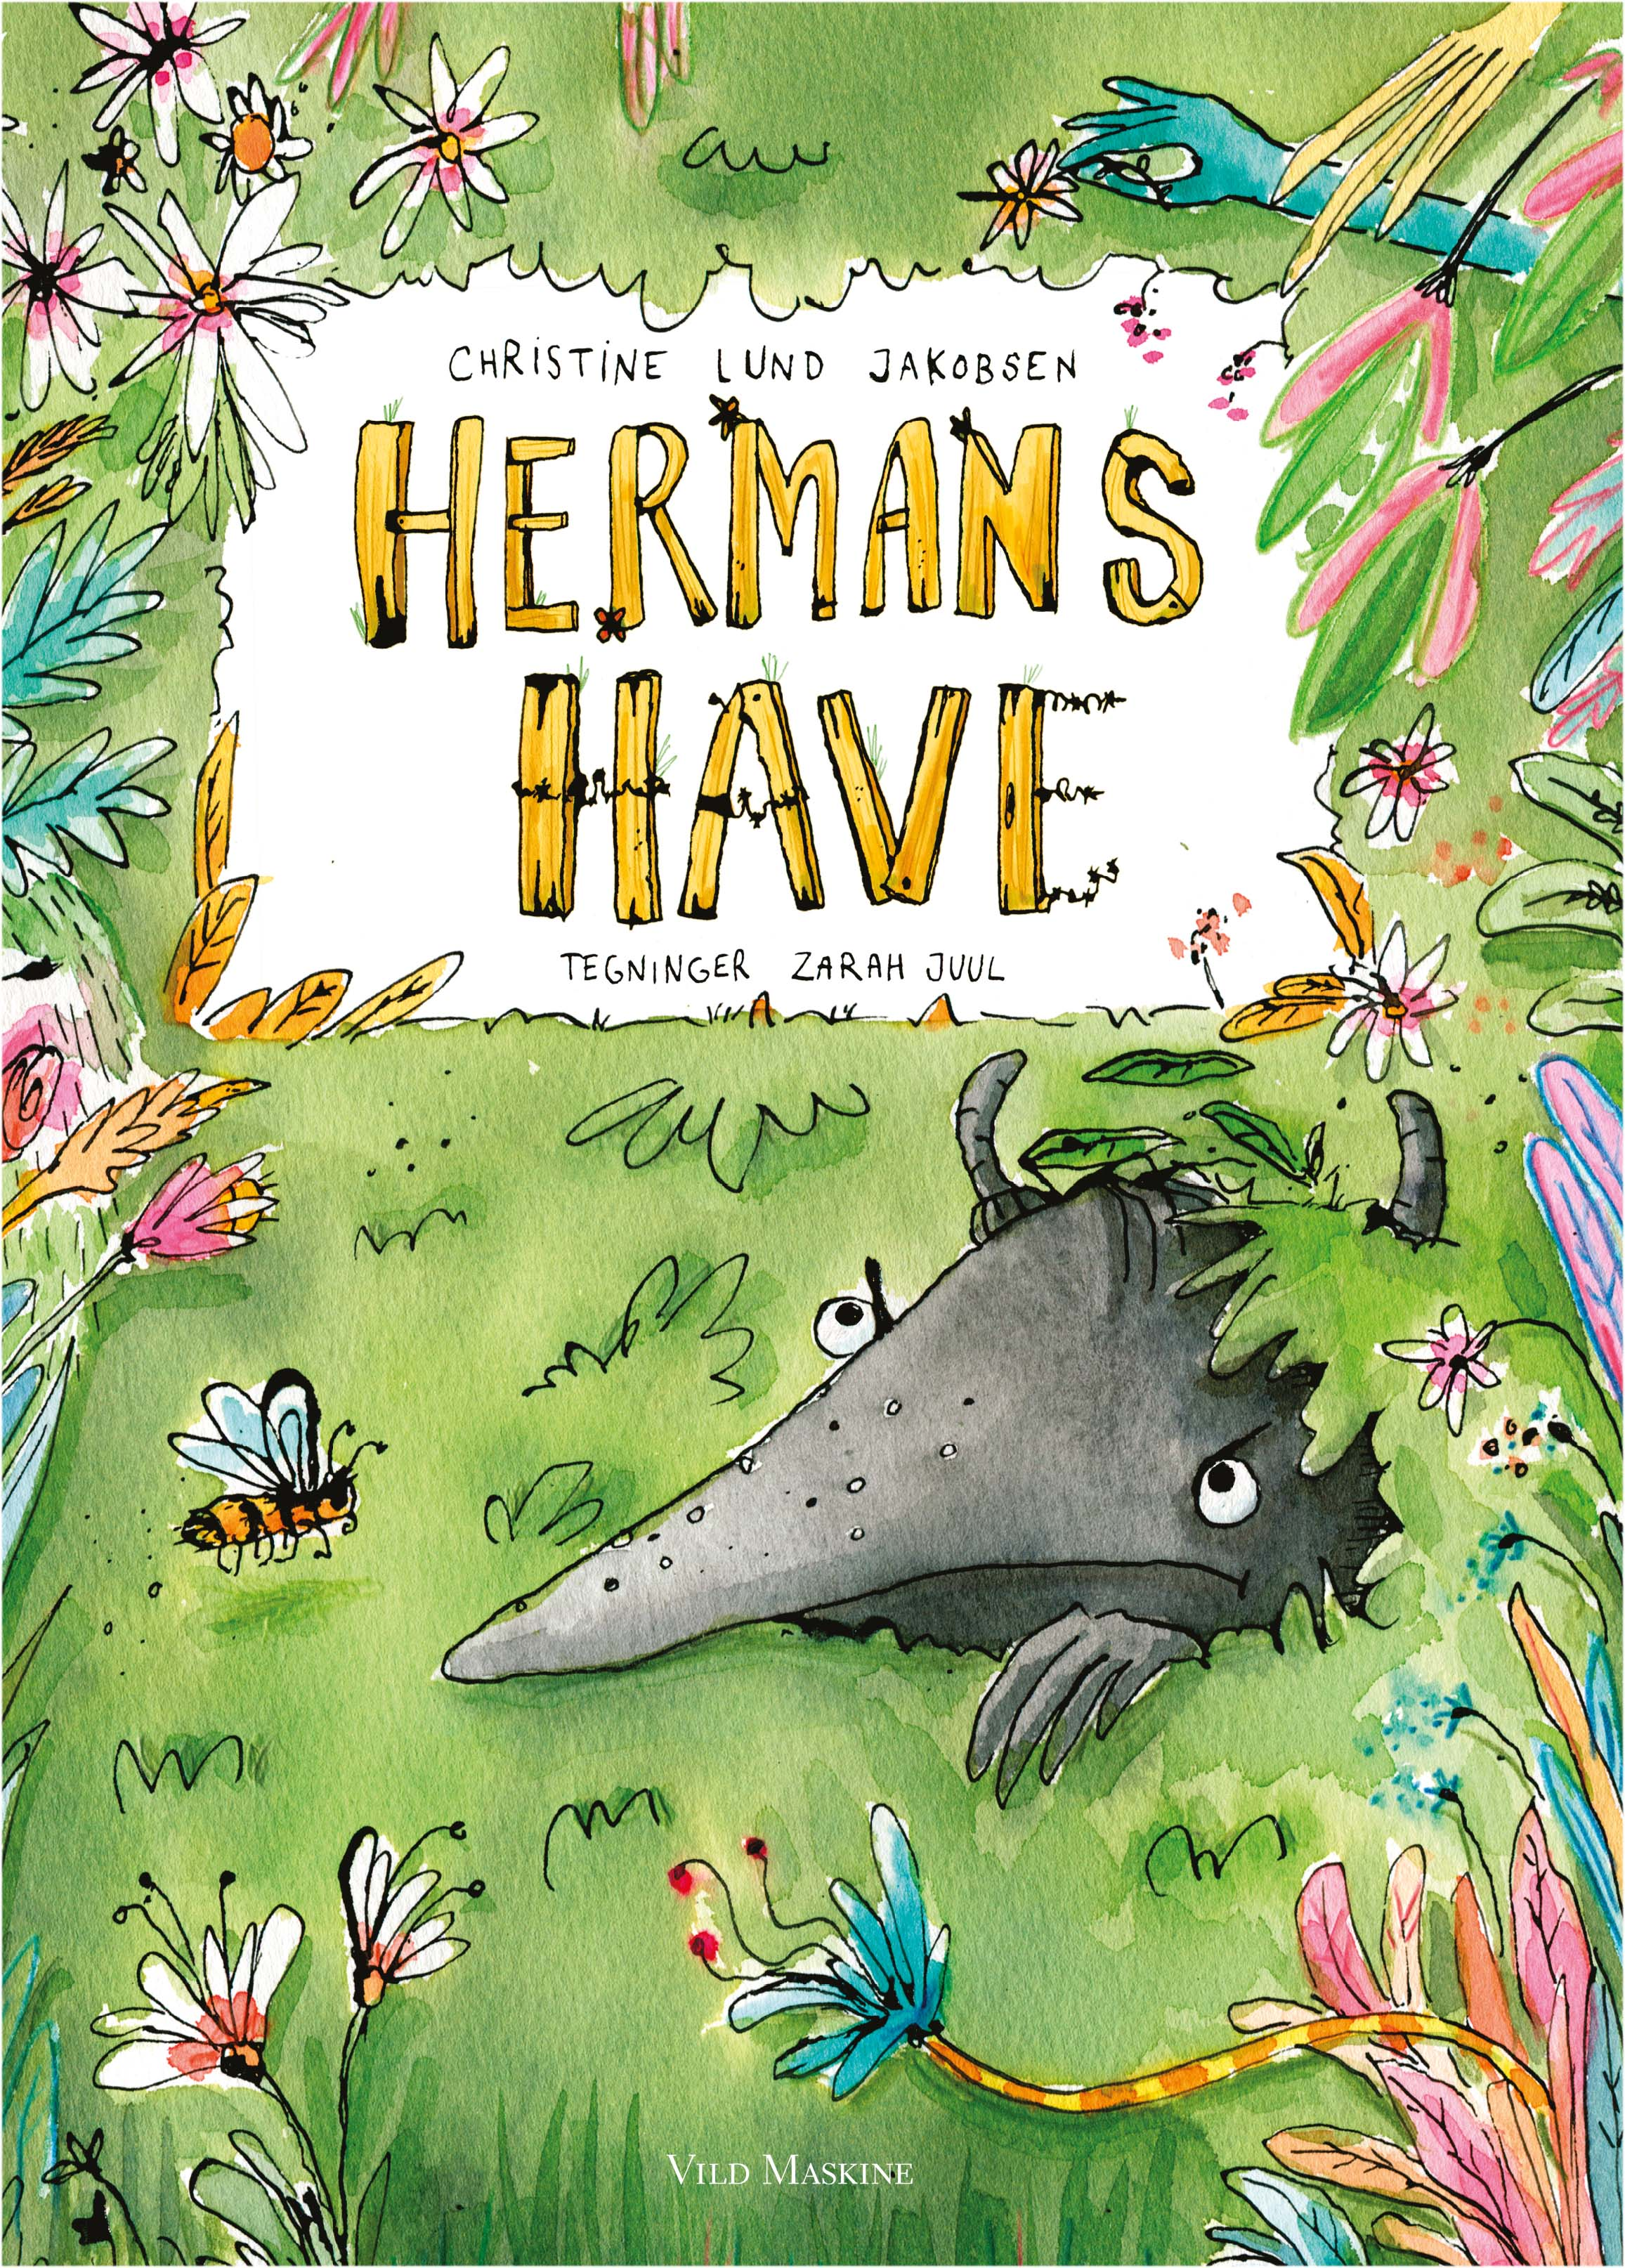 Herman's garden, children's book by author Christine Lund Jakobsen, with bright and sunny illustrations by Zarah Juul.  Please contact Babel Bridge literary Agency for reading samples on this title: https://www.babel-bridge.com/